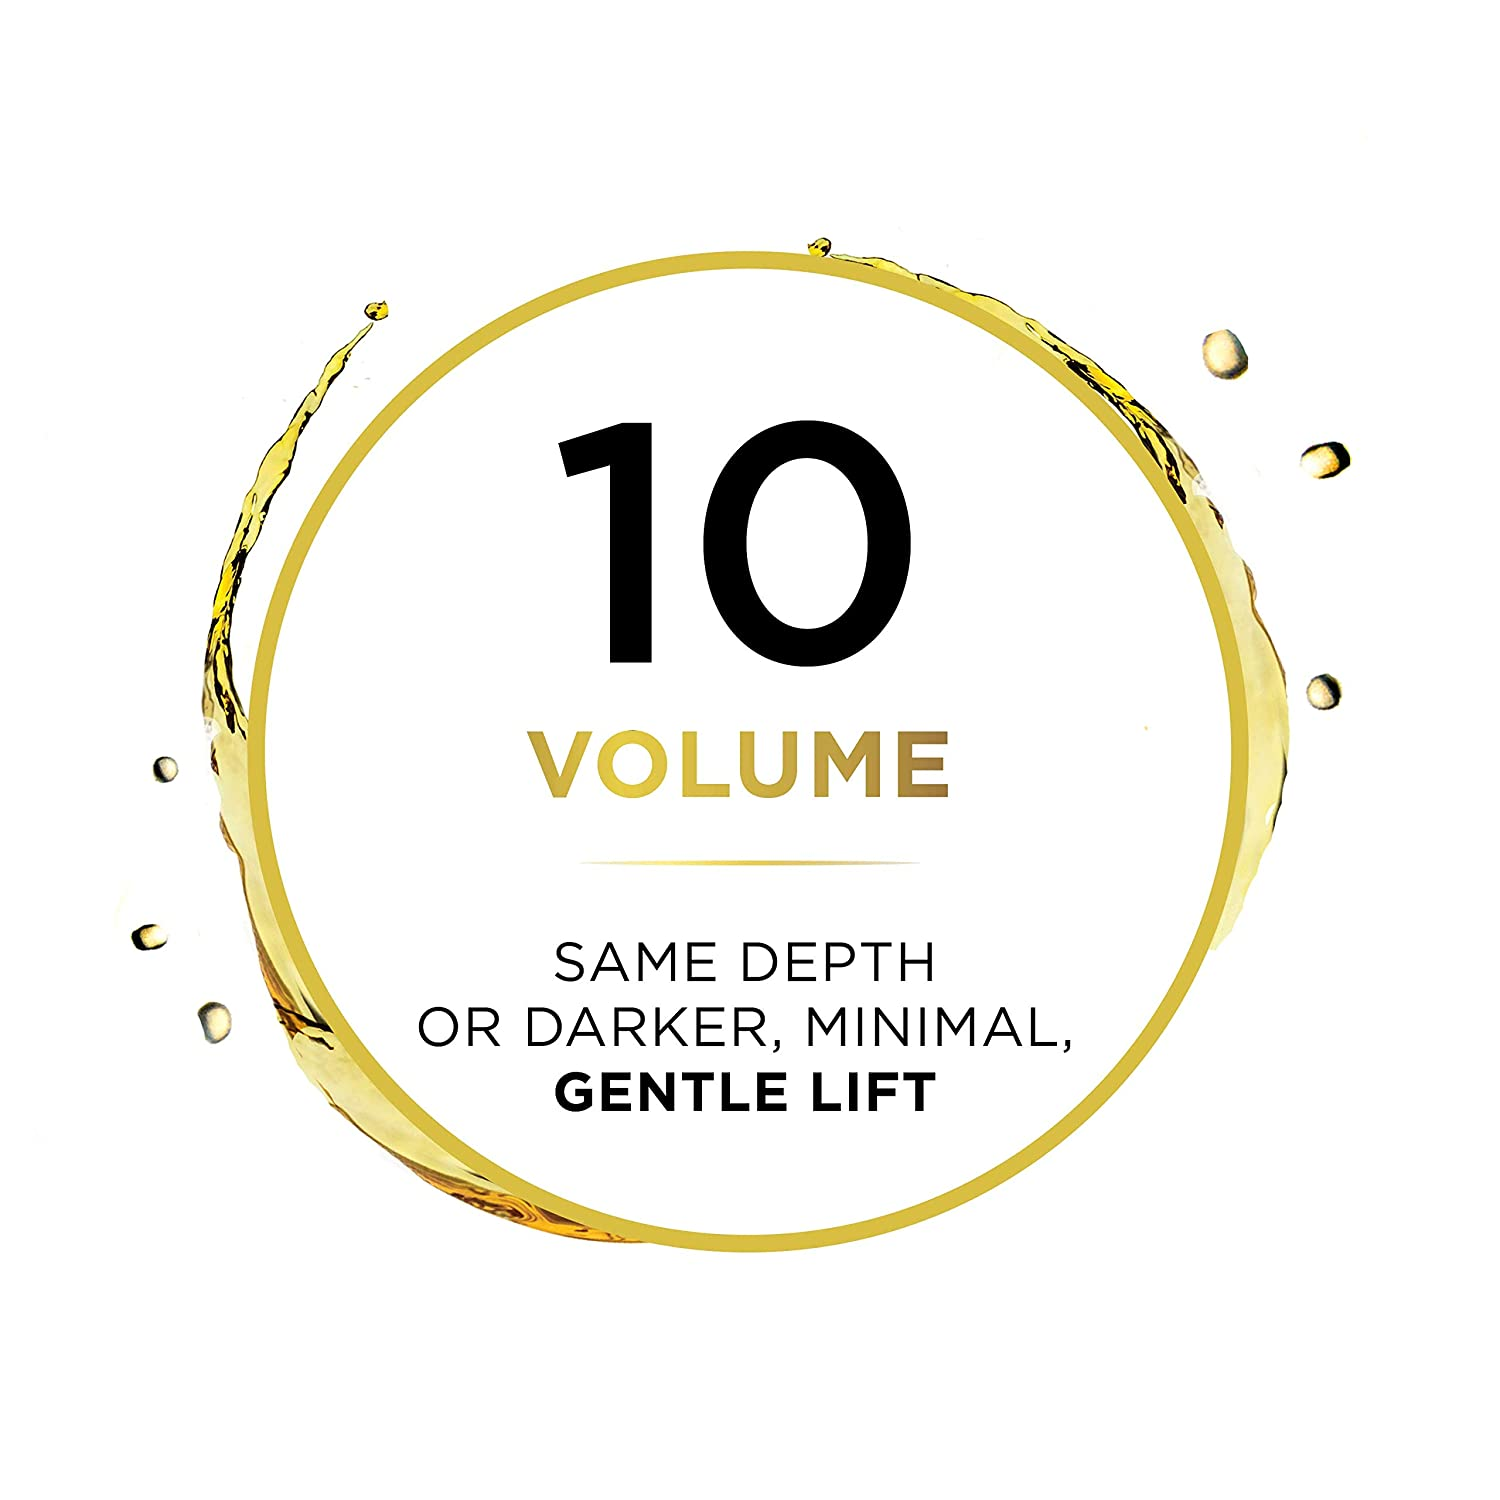 10 Volume | Developers for Lightening | CLAIROL PROFESSIONAL | SHSalons.com